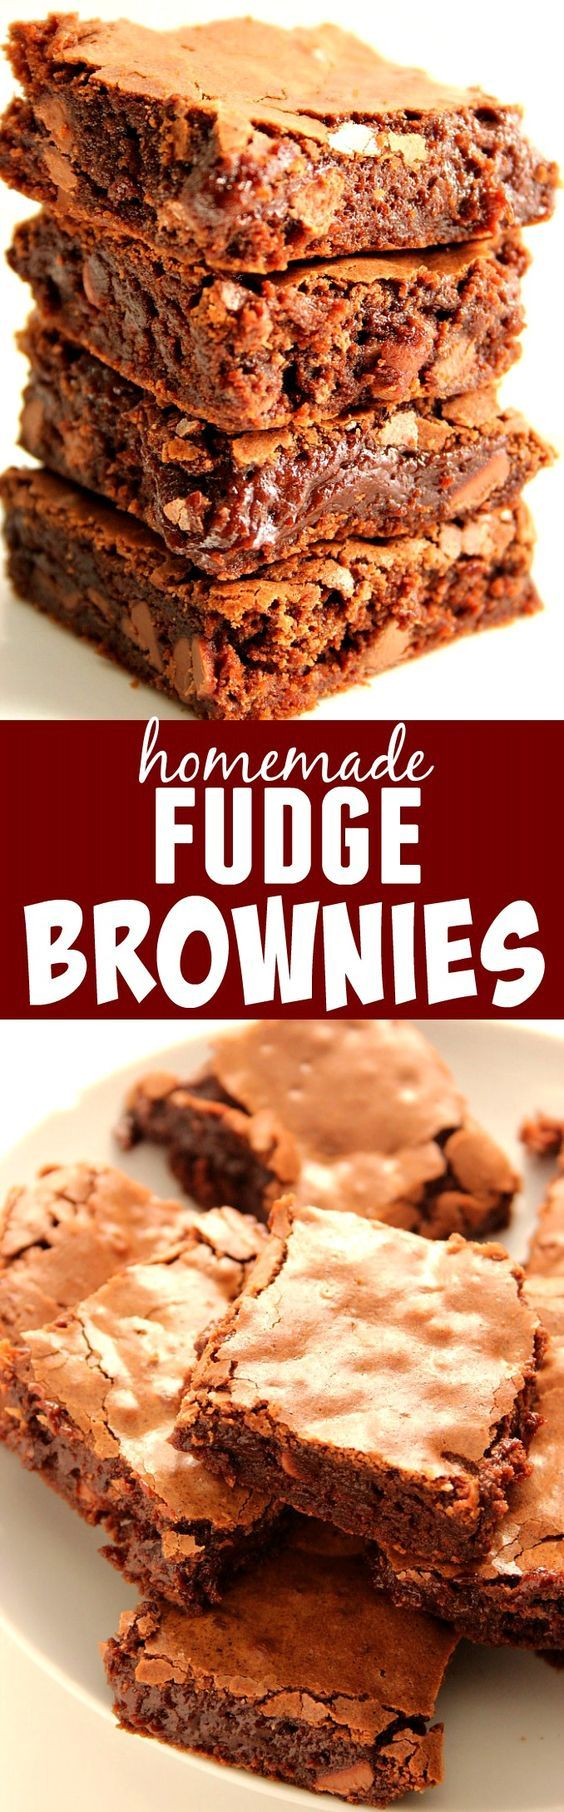 Homemade Fudge Brownies Recipe – the one and only recipe for fudgy brownies you will ever need! Learn the simple trick to get the flaky, crunchy top!